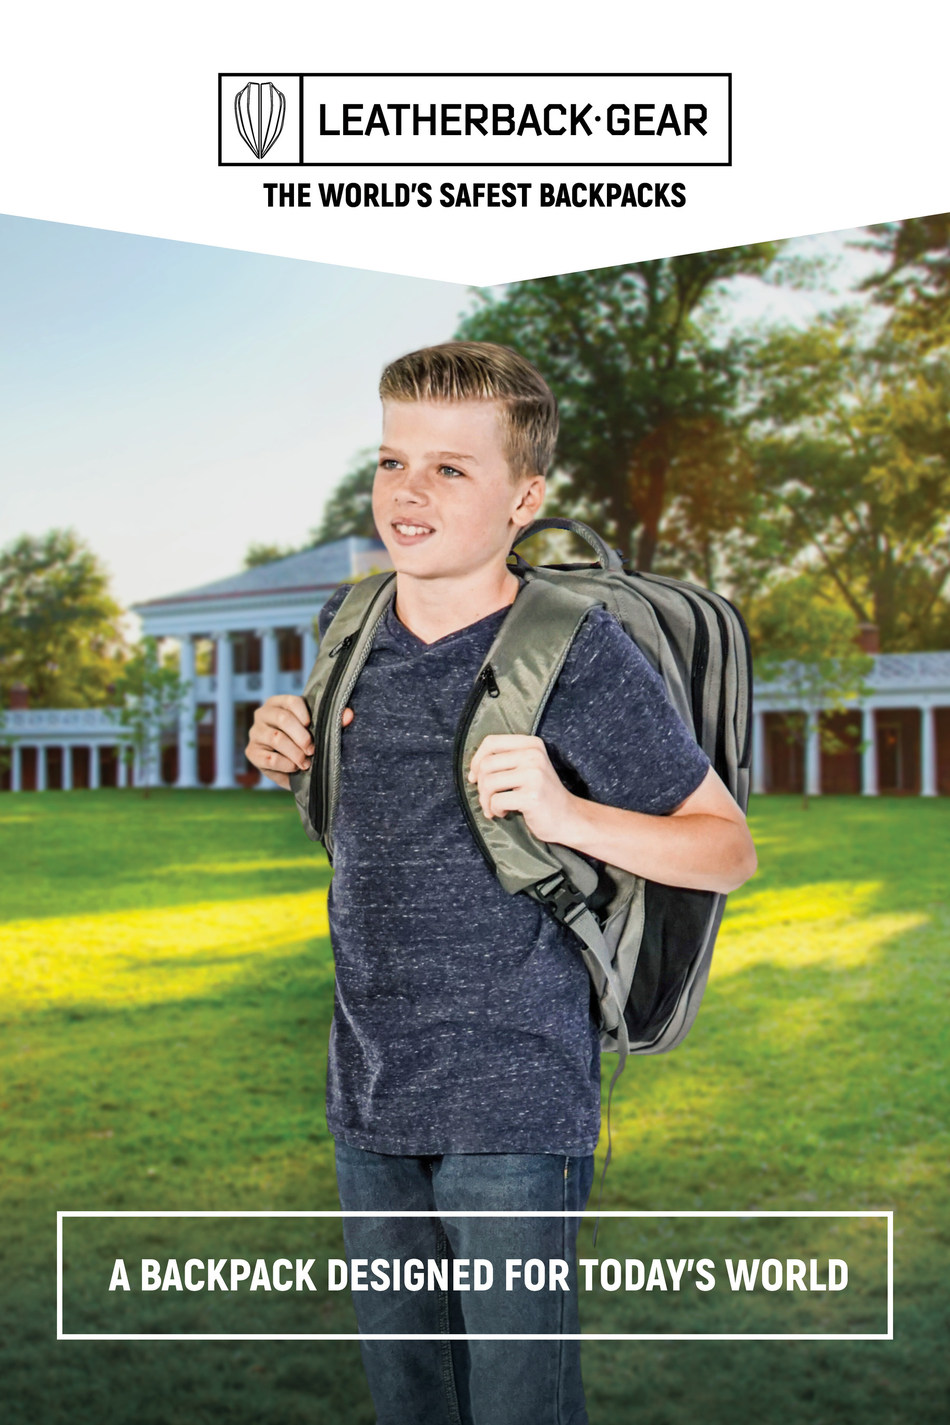 Leatherback Gear, creators of the World's Safest Backpack release the Top 5 Back to School Safety Tips.